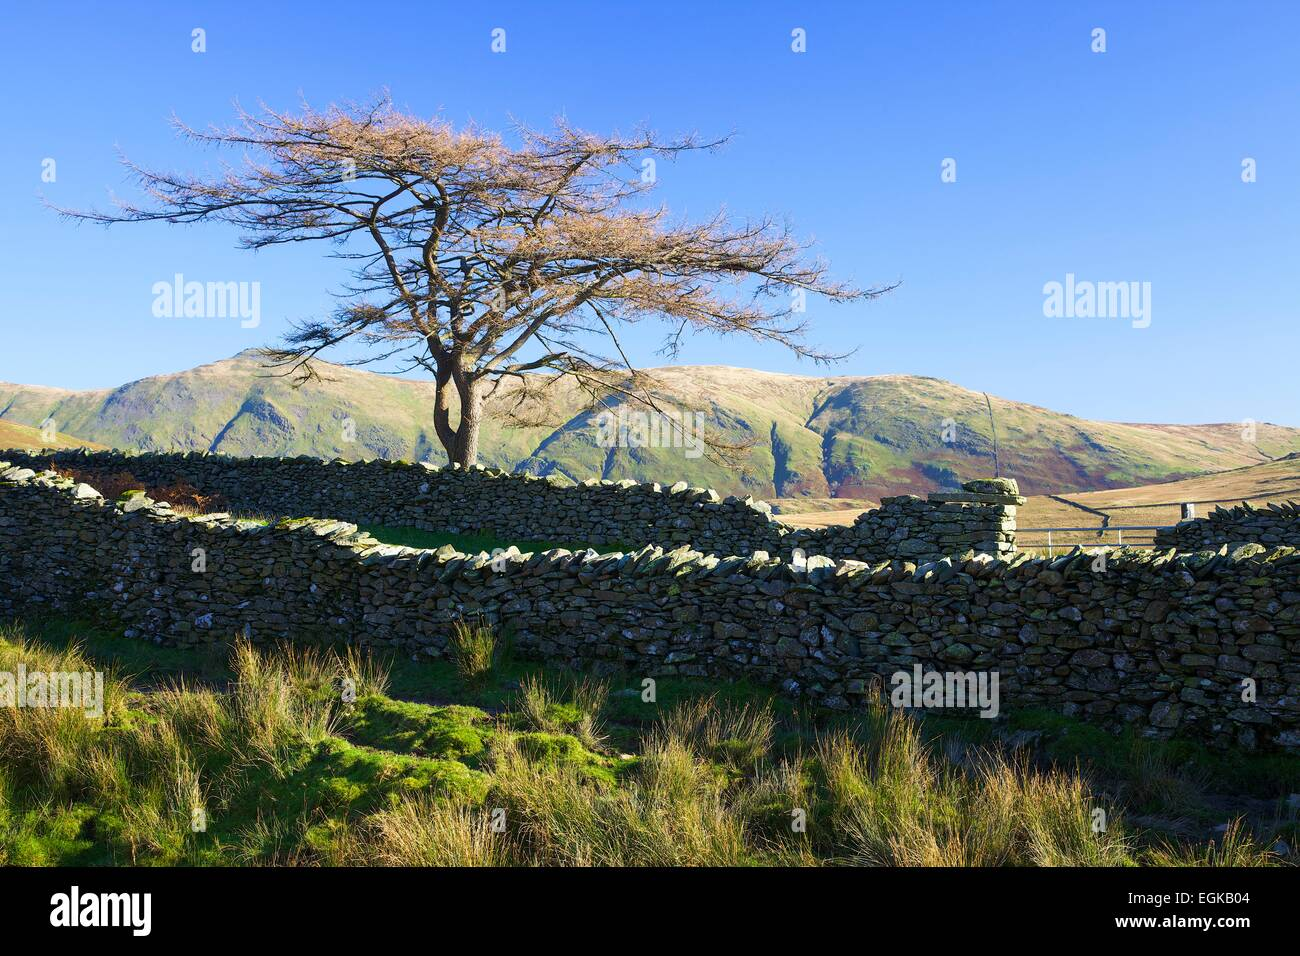 Scots pine by drystone walled. Kirk Stone Pass, Lake District National Park, Cumbria England UK - Stock Image